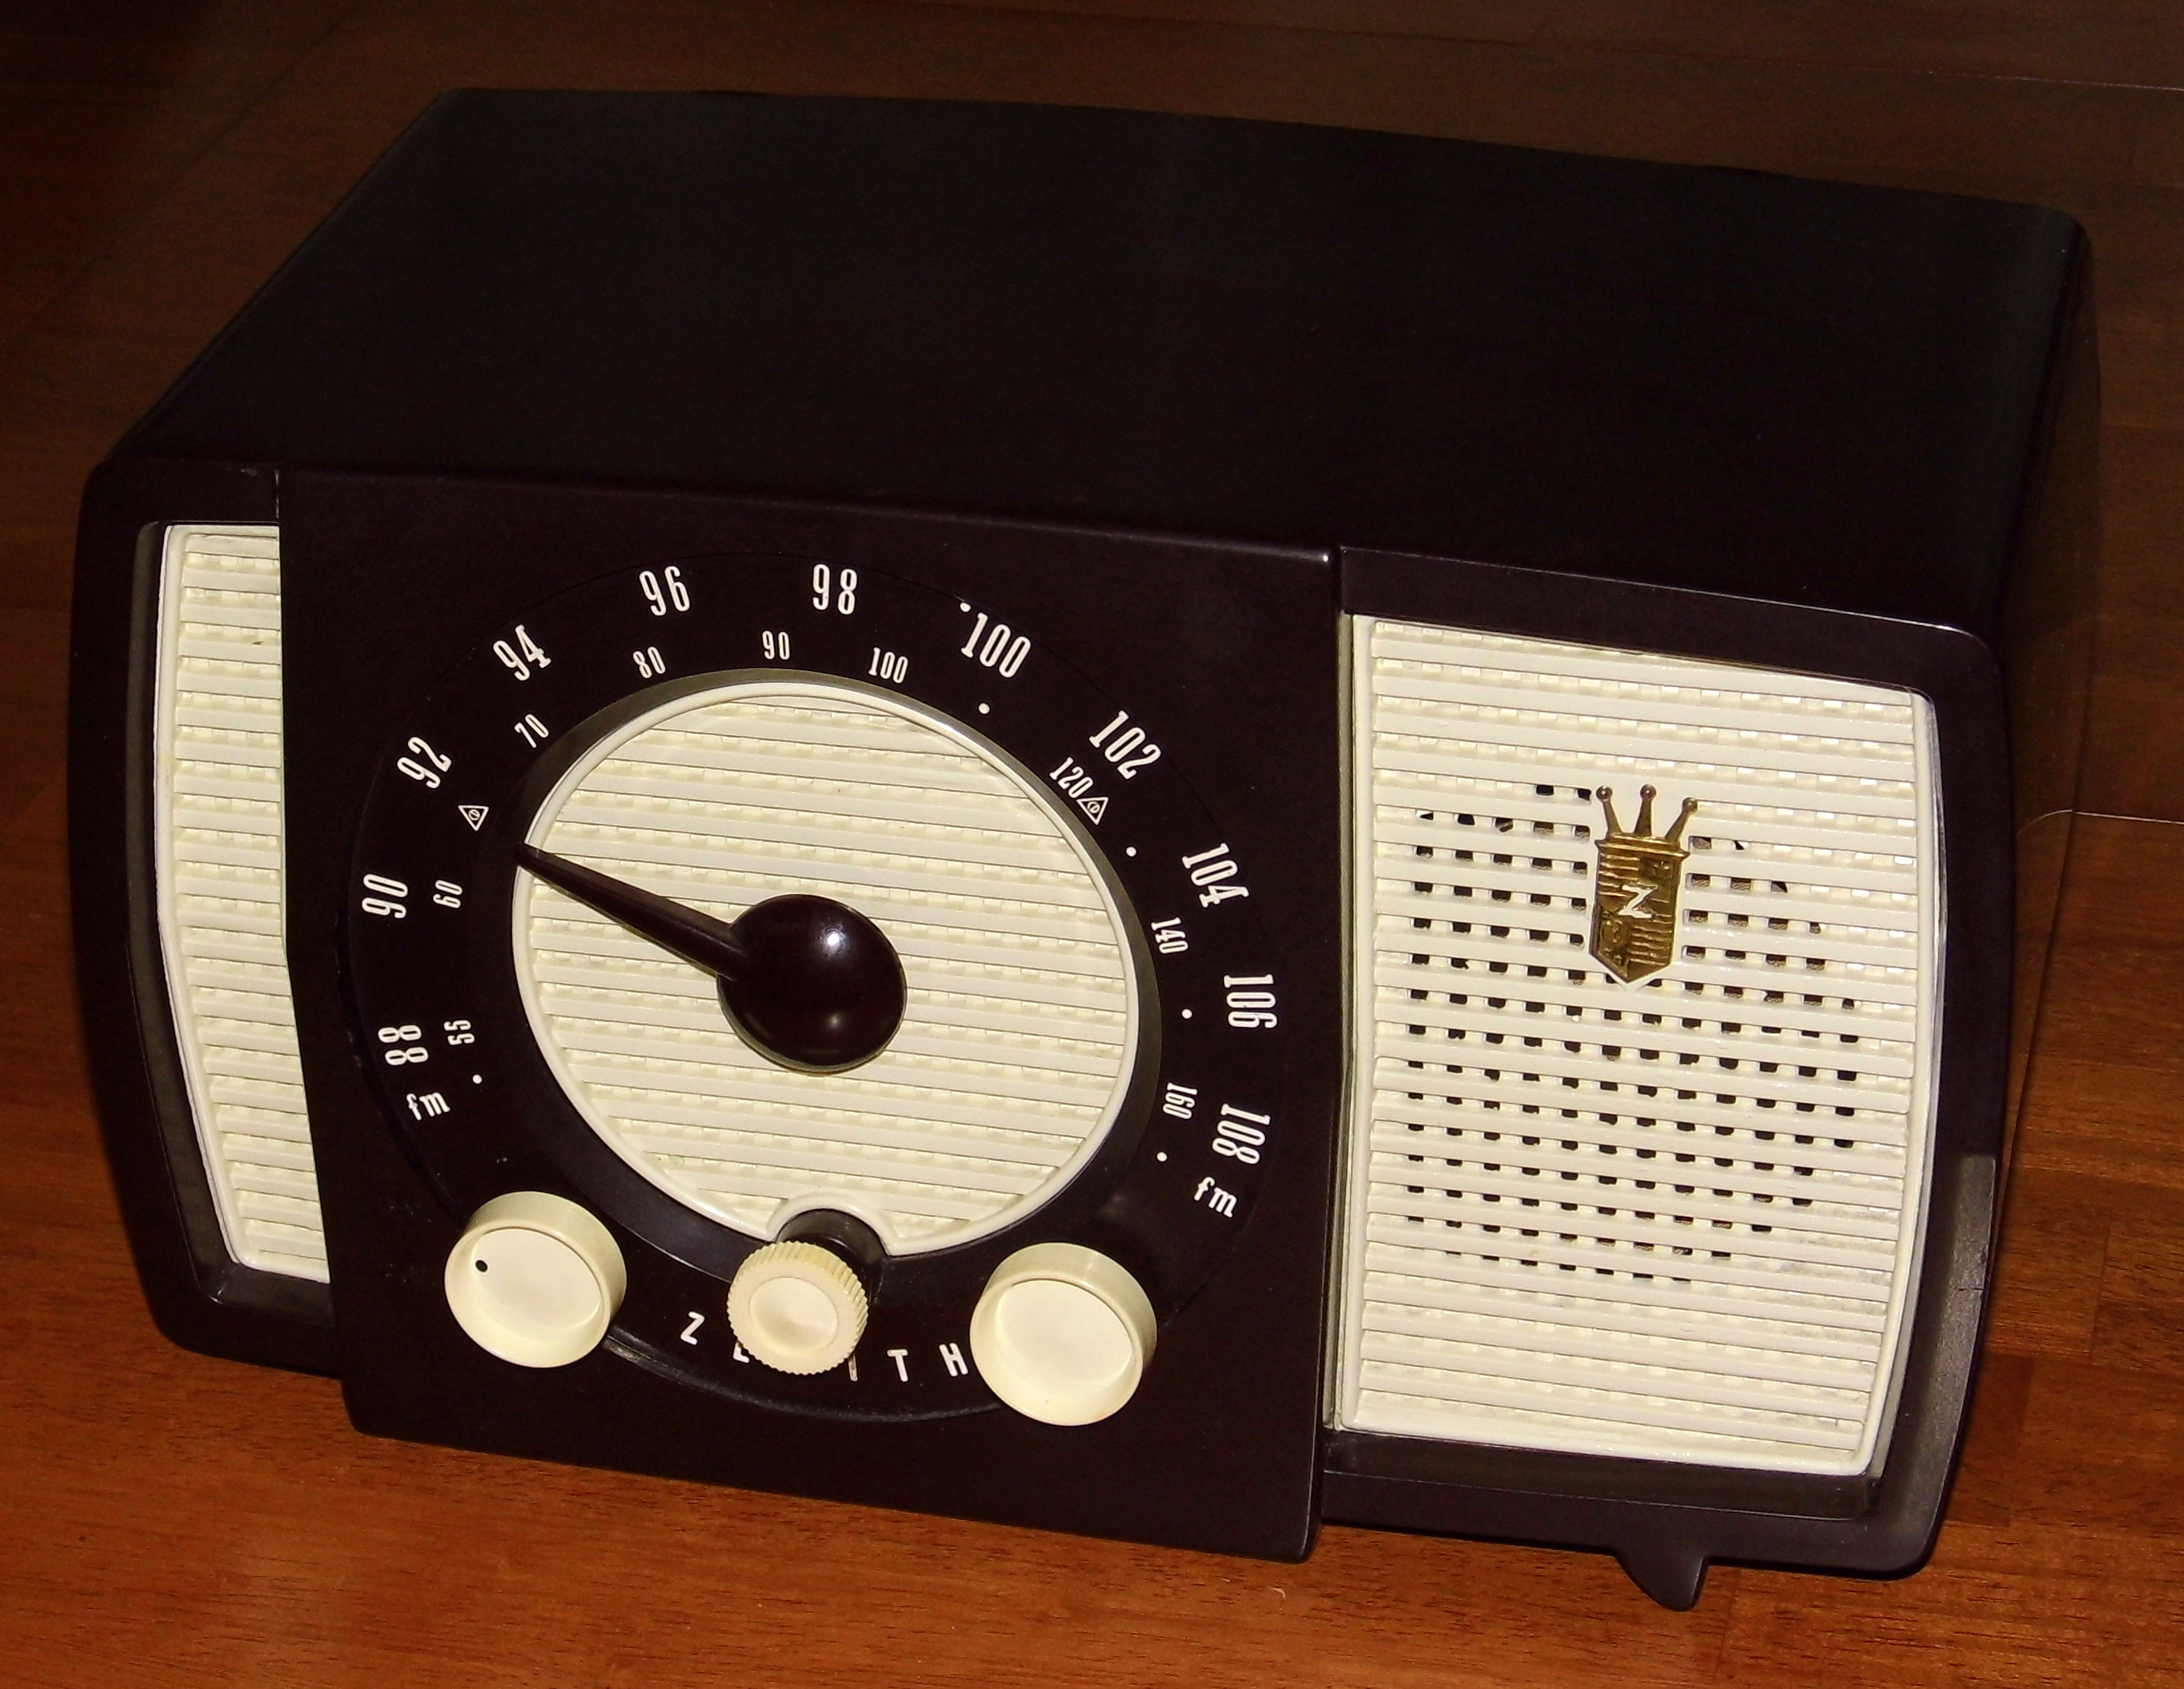 File:Vintage Zenith Table Radio, Model Y723, Two Band (AM